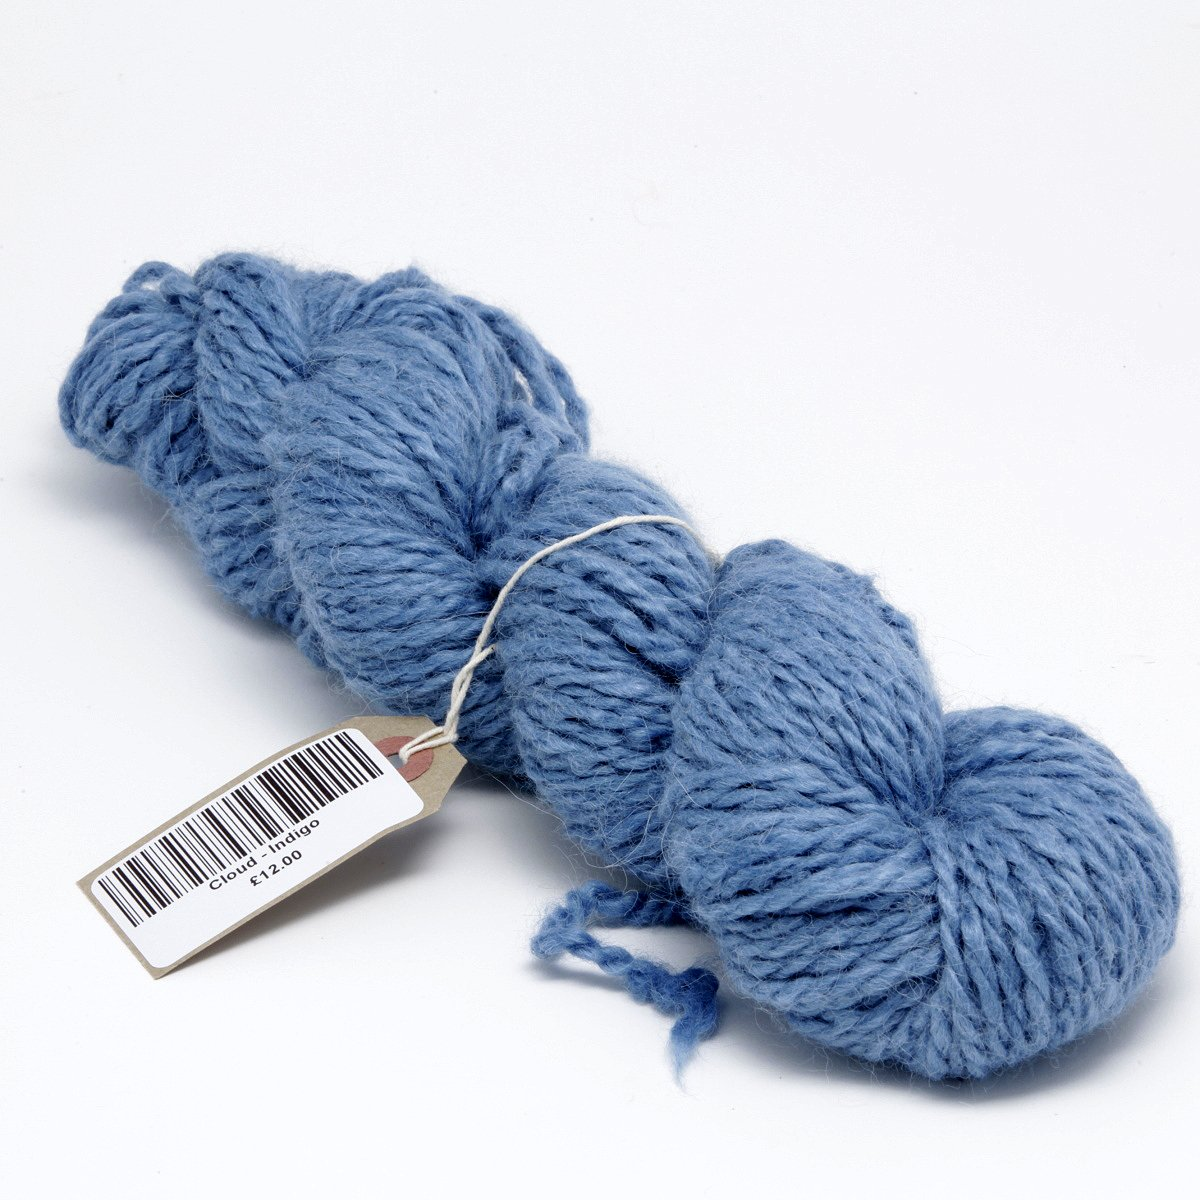 Indigo dyed alpaca knitting yarn